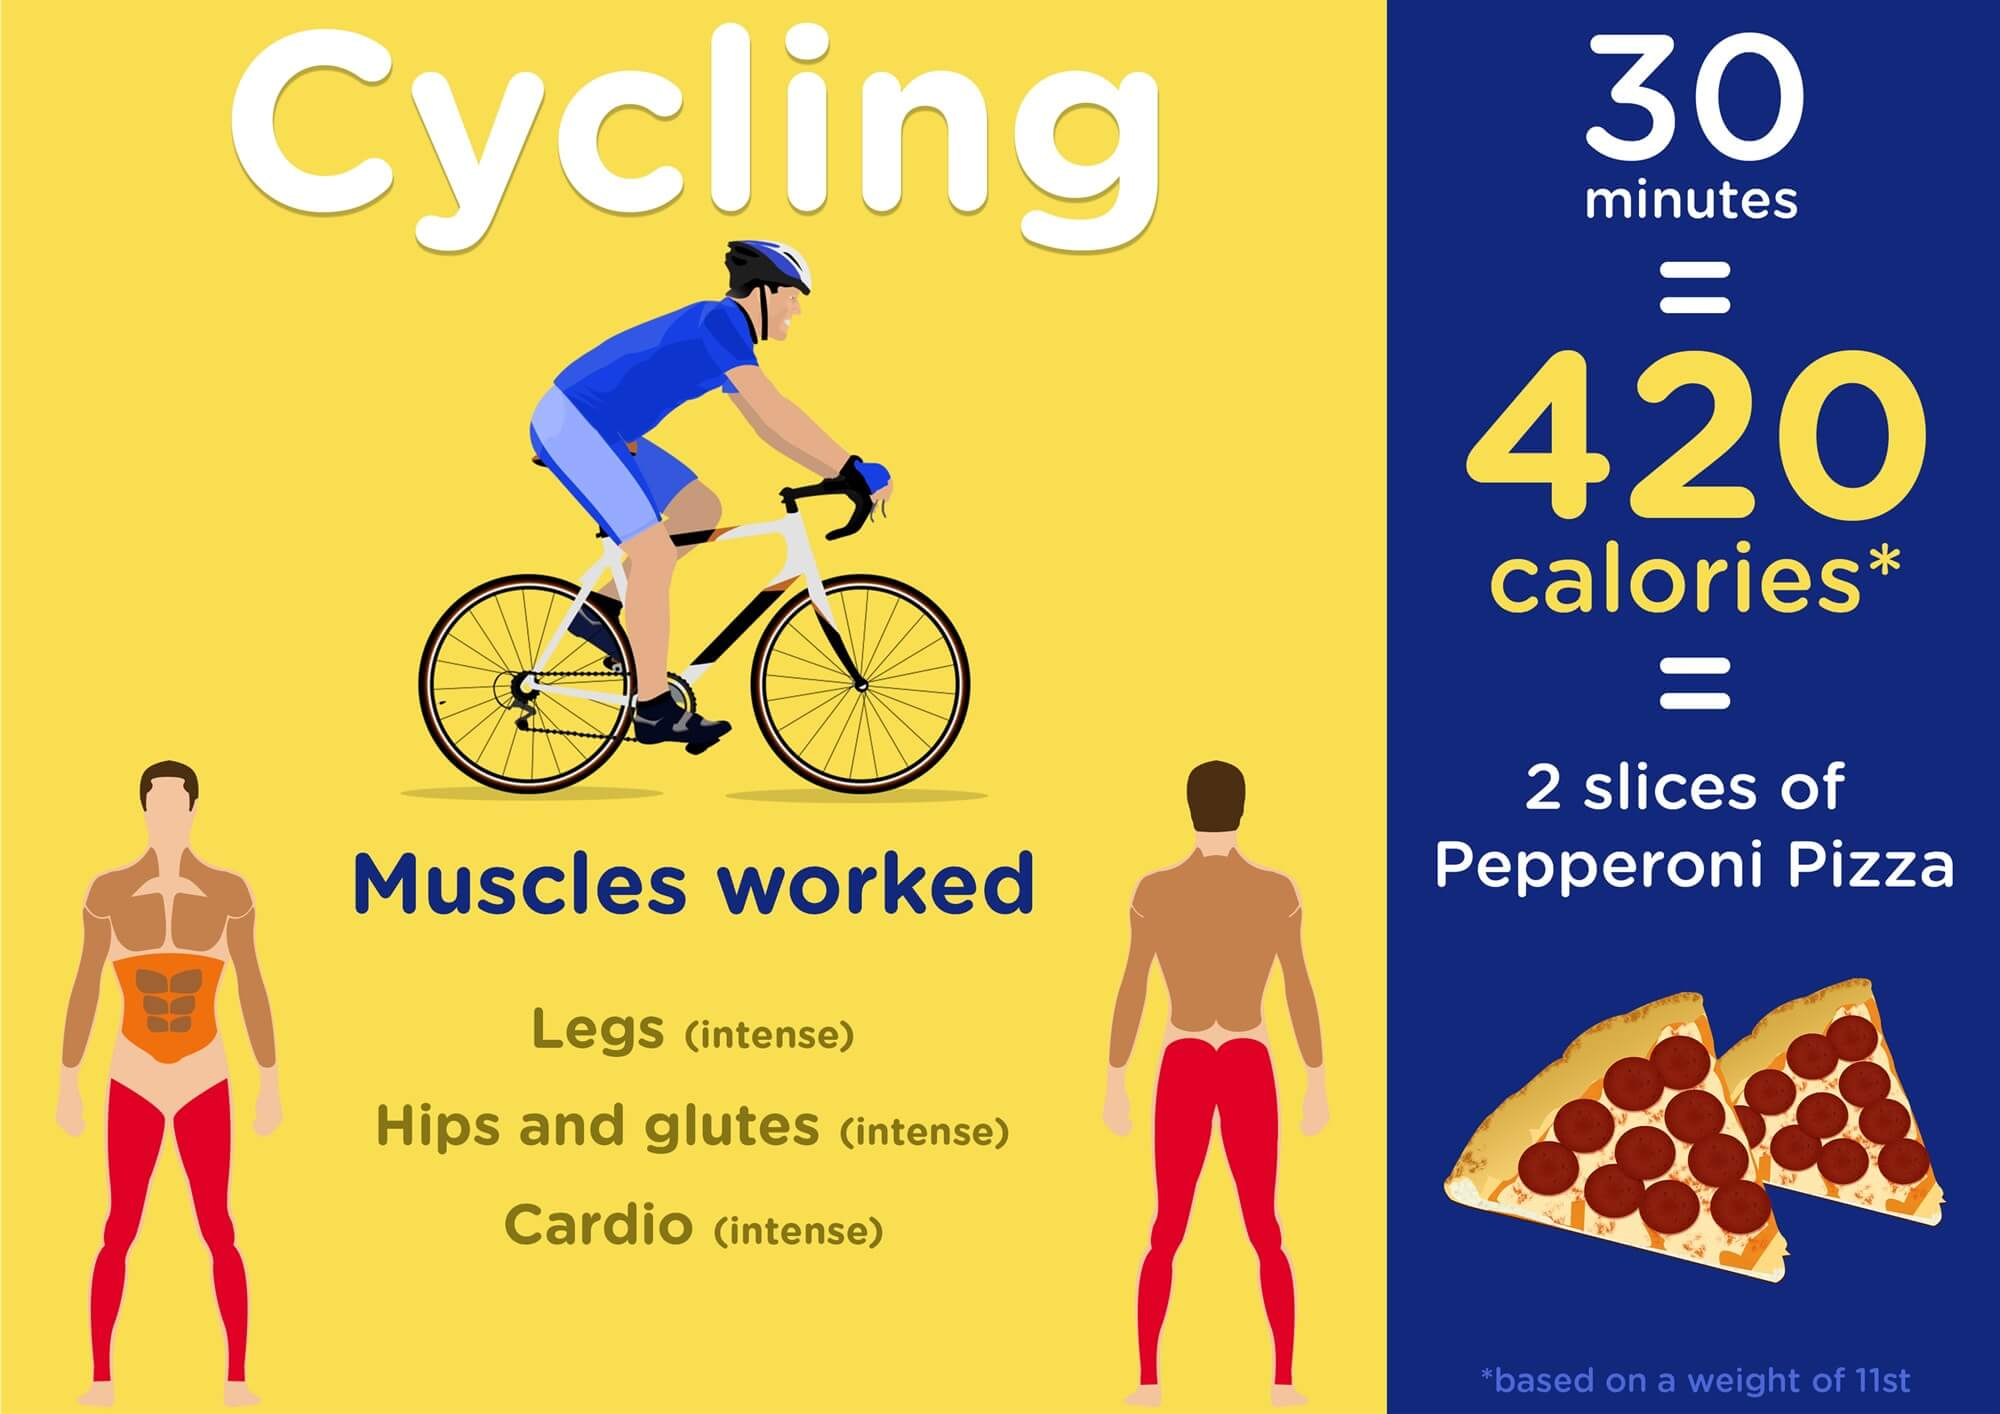 Calories burned while pulling a bike trailer – palm beach bike tours.